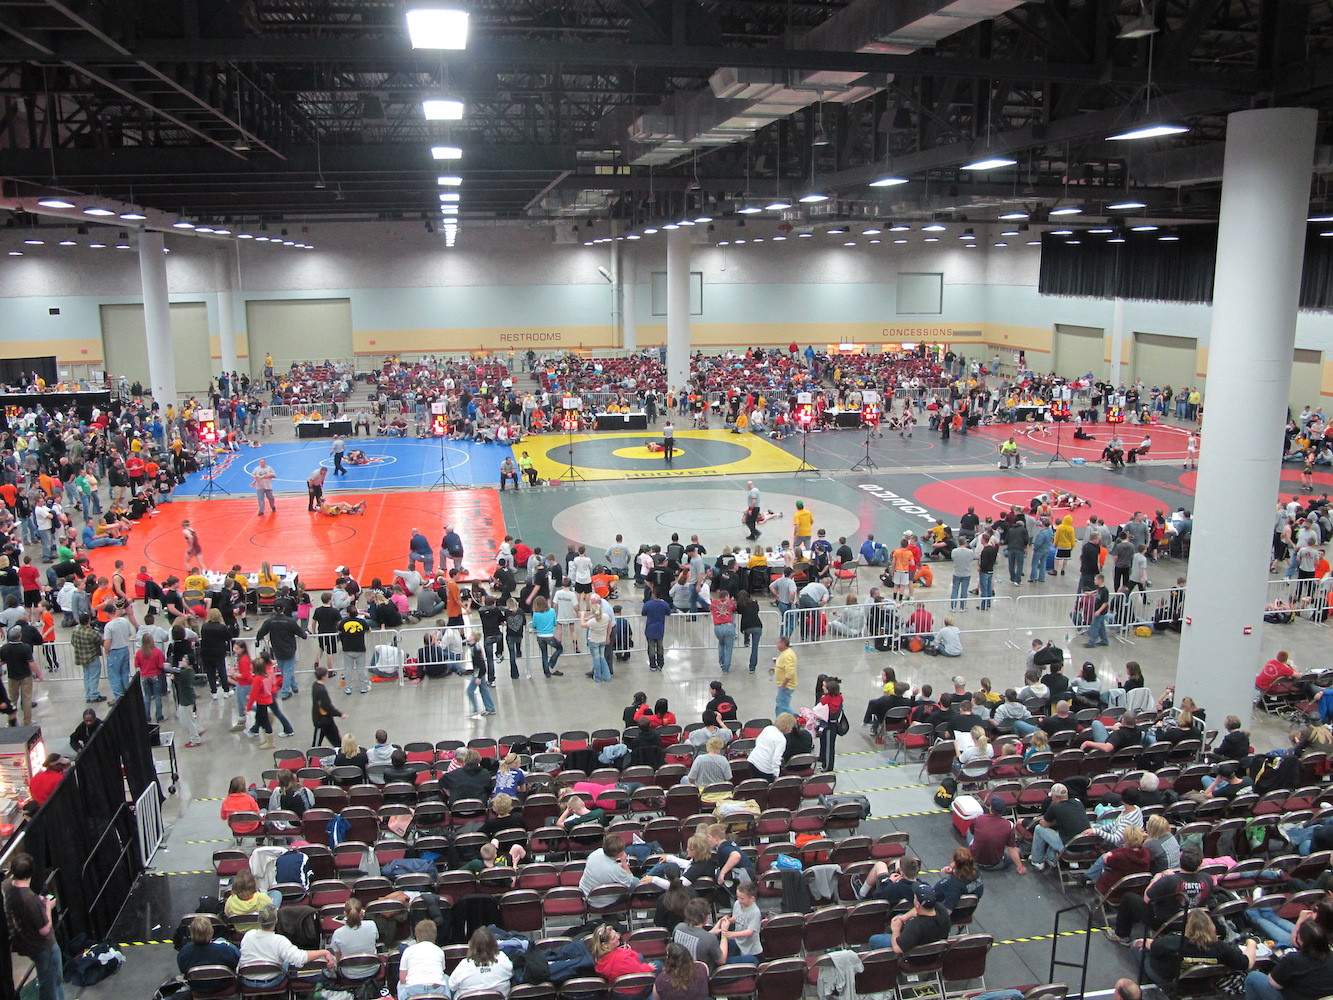 The Iowa Events Center hosts many wrestling tournaments, from pee wees to professionals